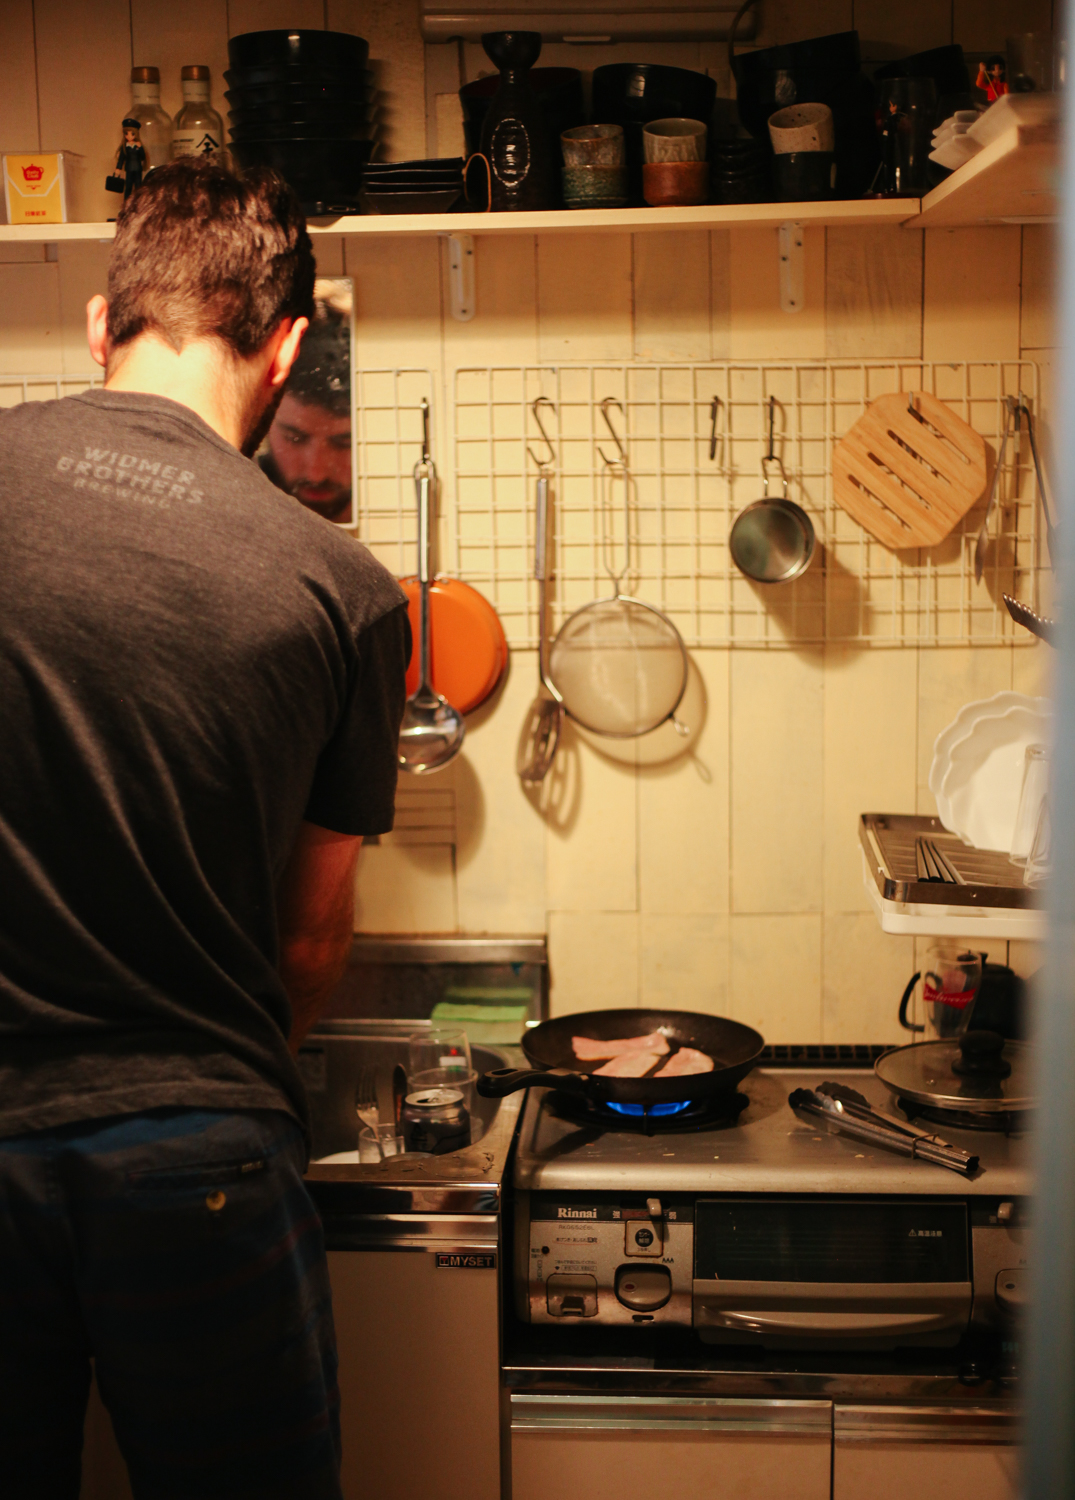 Zac making bacon in our one-burner kitchen at Riki's house.